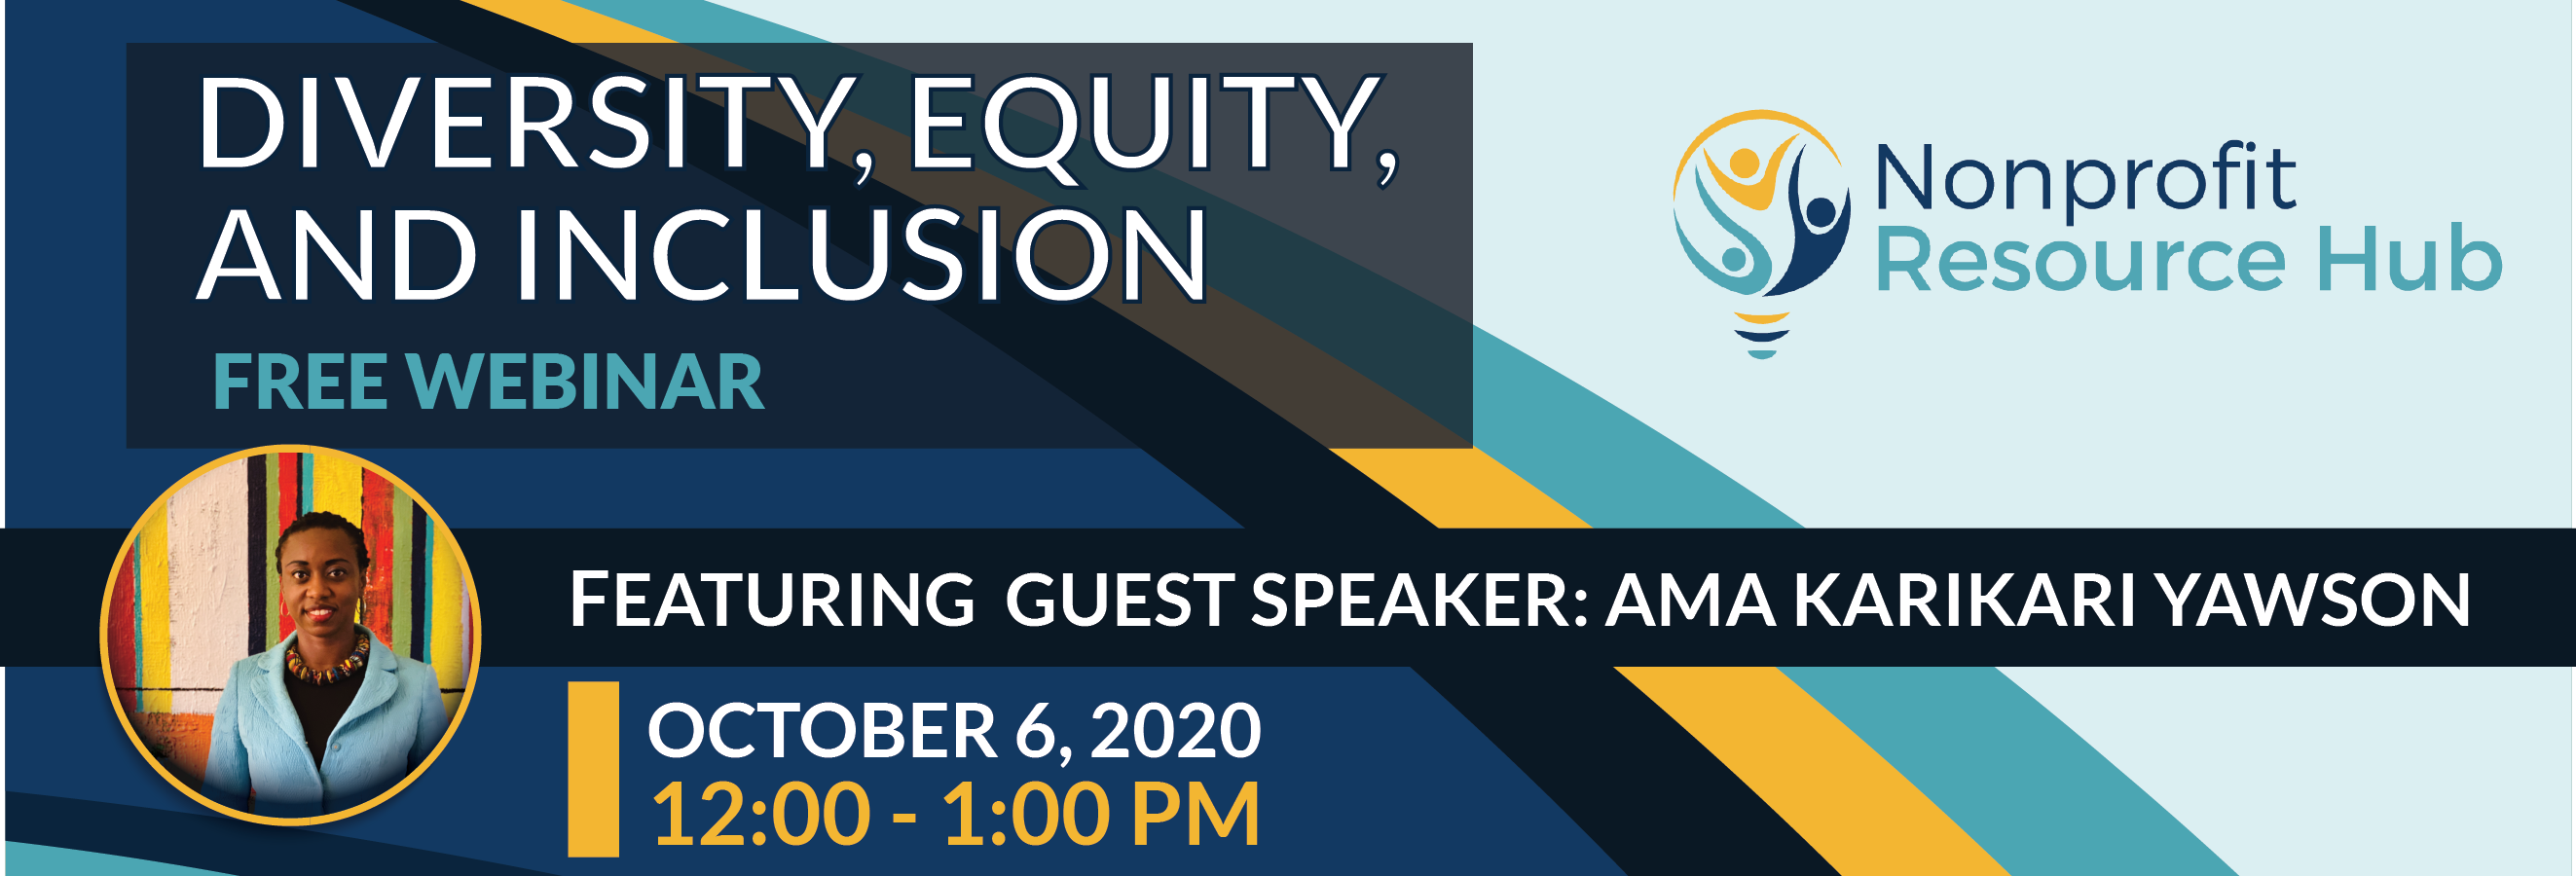 Diversity, Equity, and Inclusion Webinar: Header